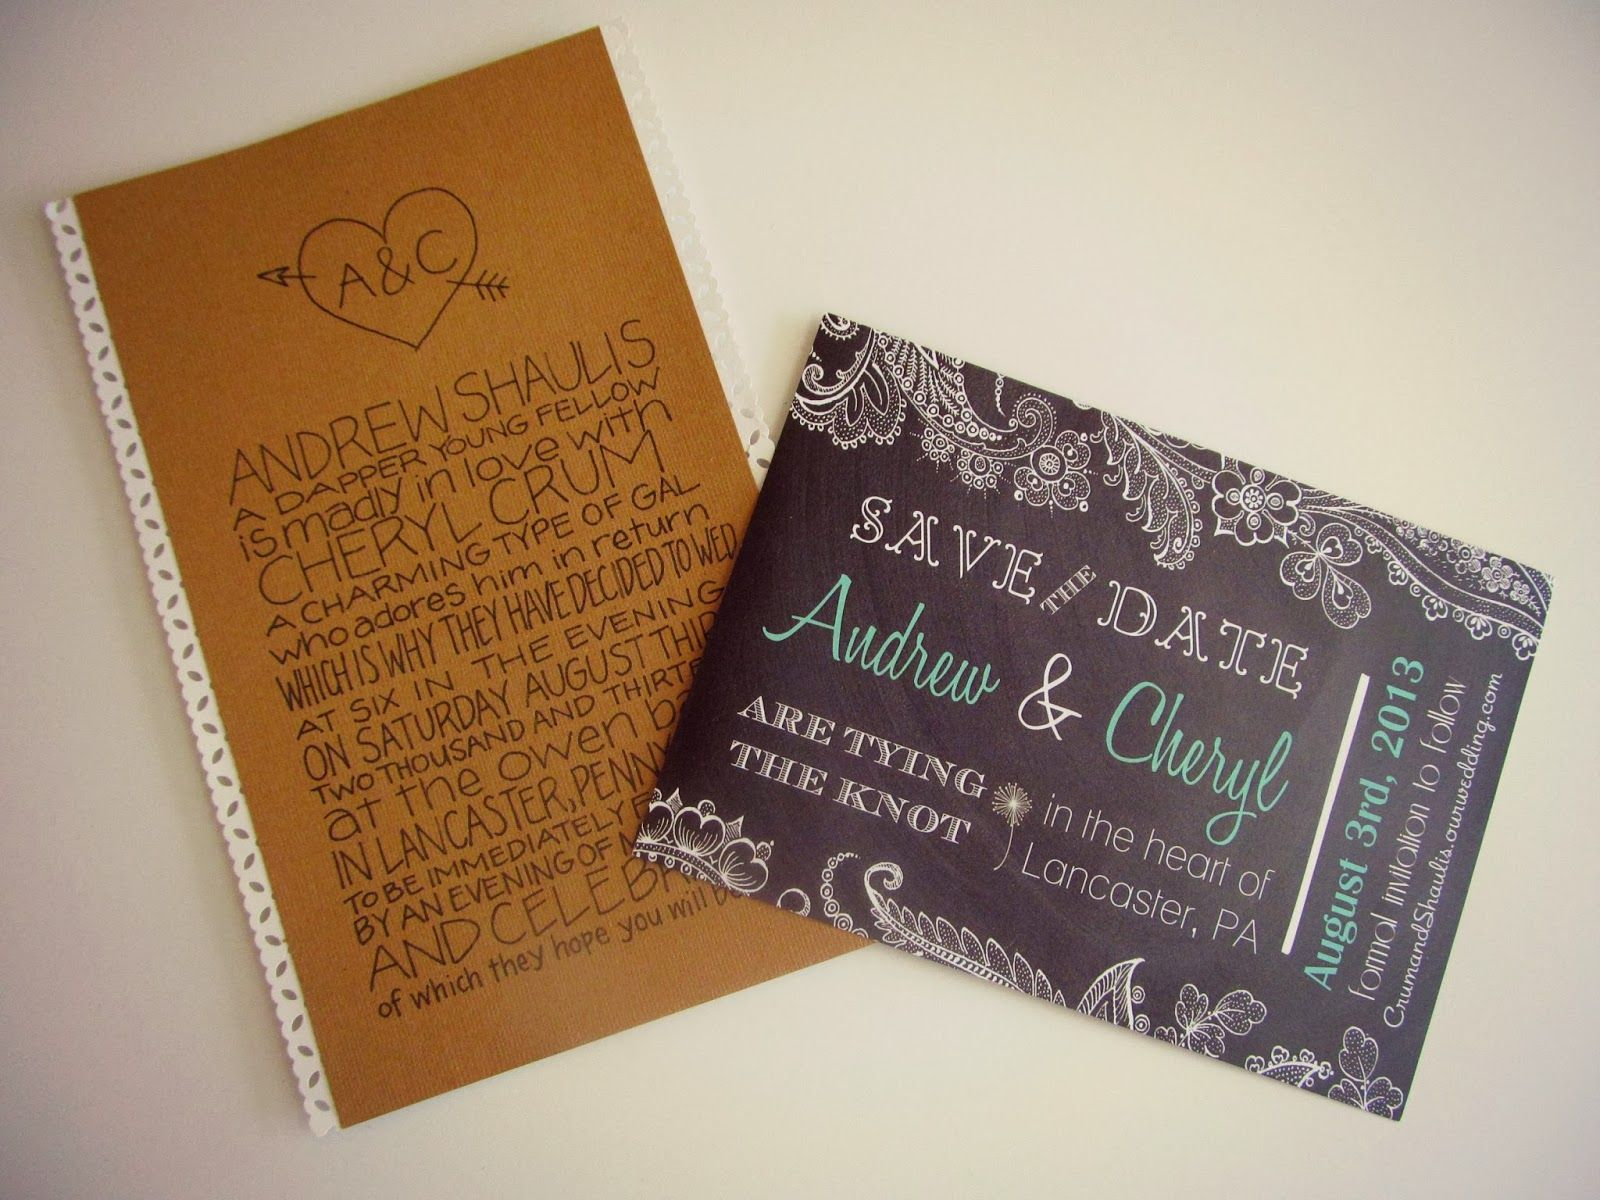 DIY Wedding Post #7! How to send out pretty invitations without breaking the bank.